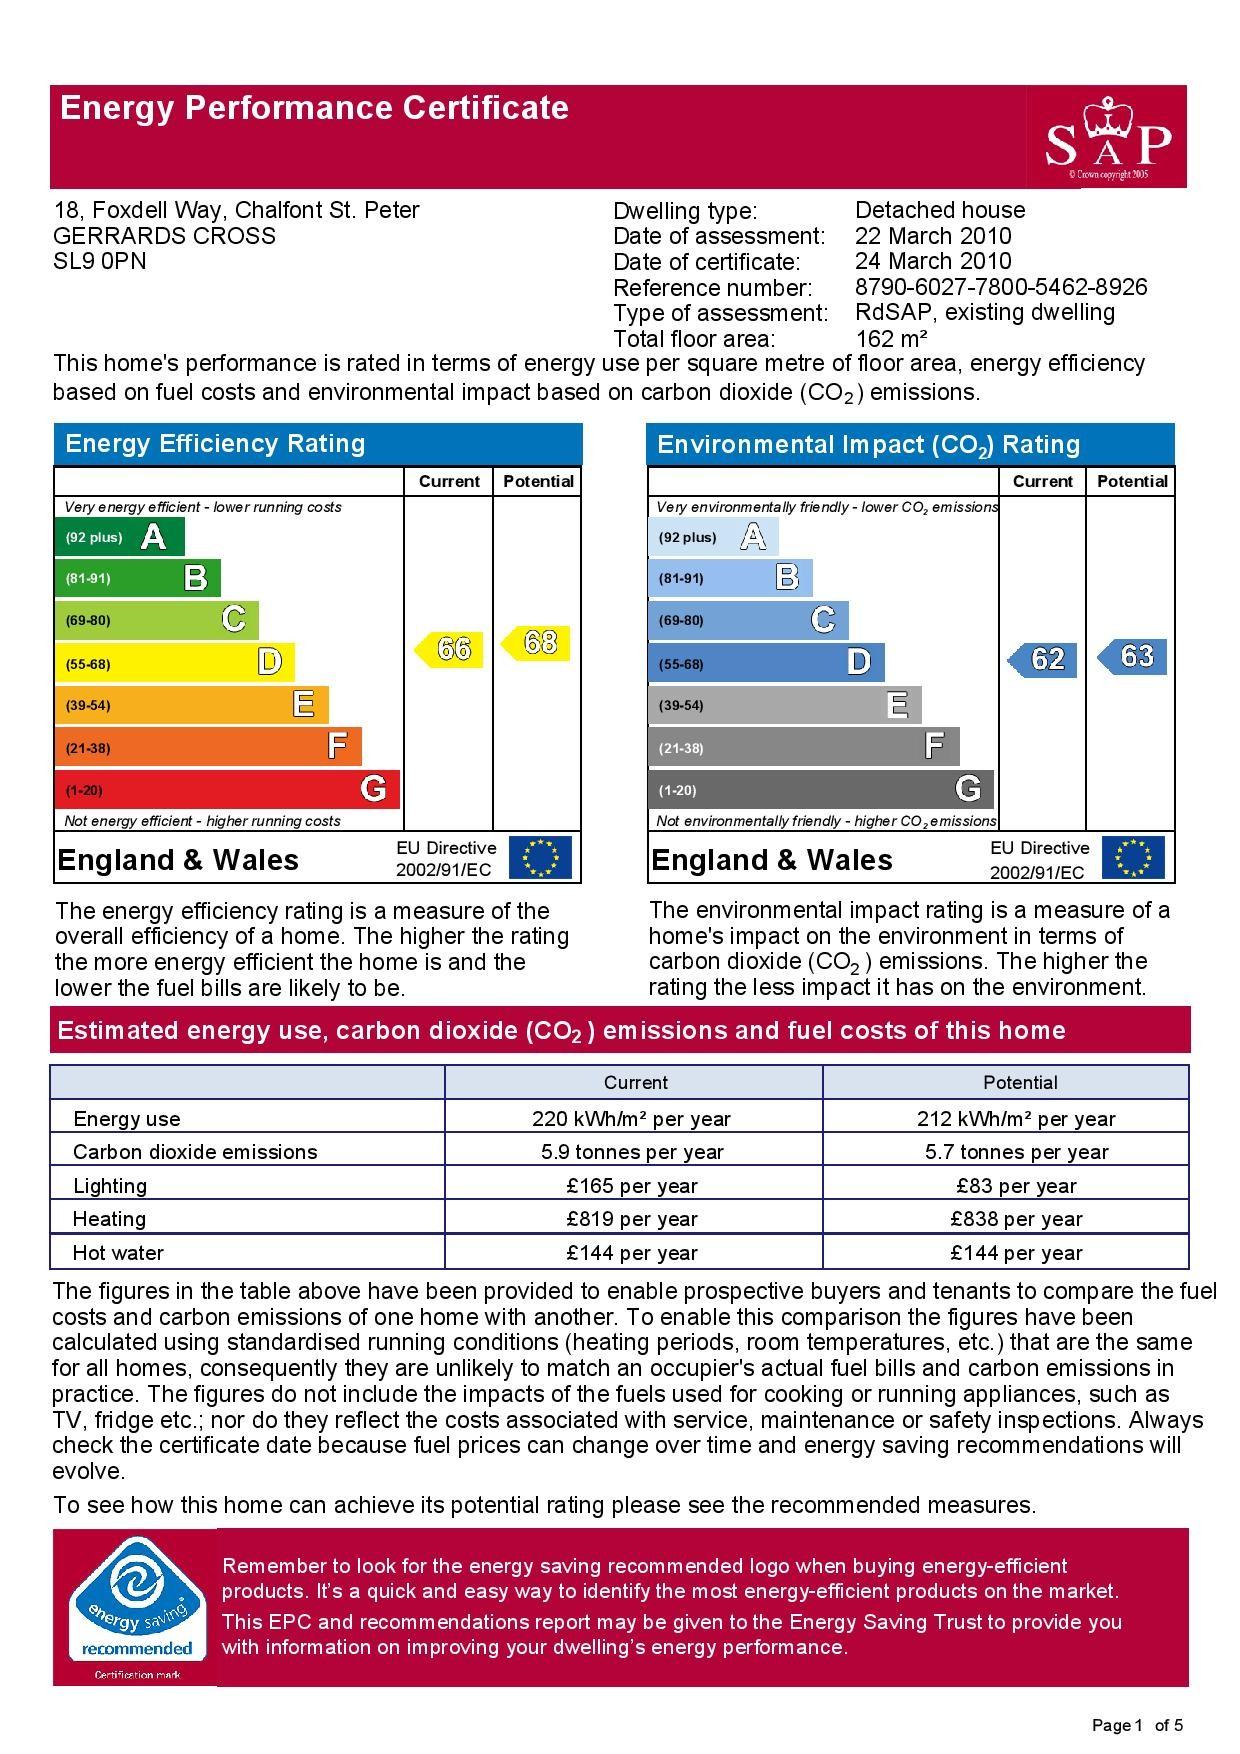 EPC Graph for 18 Foxdell Way, Chalfont St Peter, Buckinghamshire, SL9 0PN